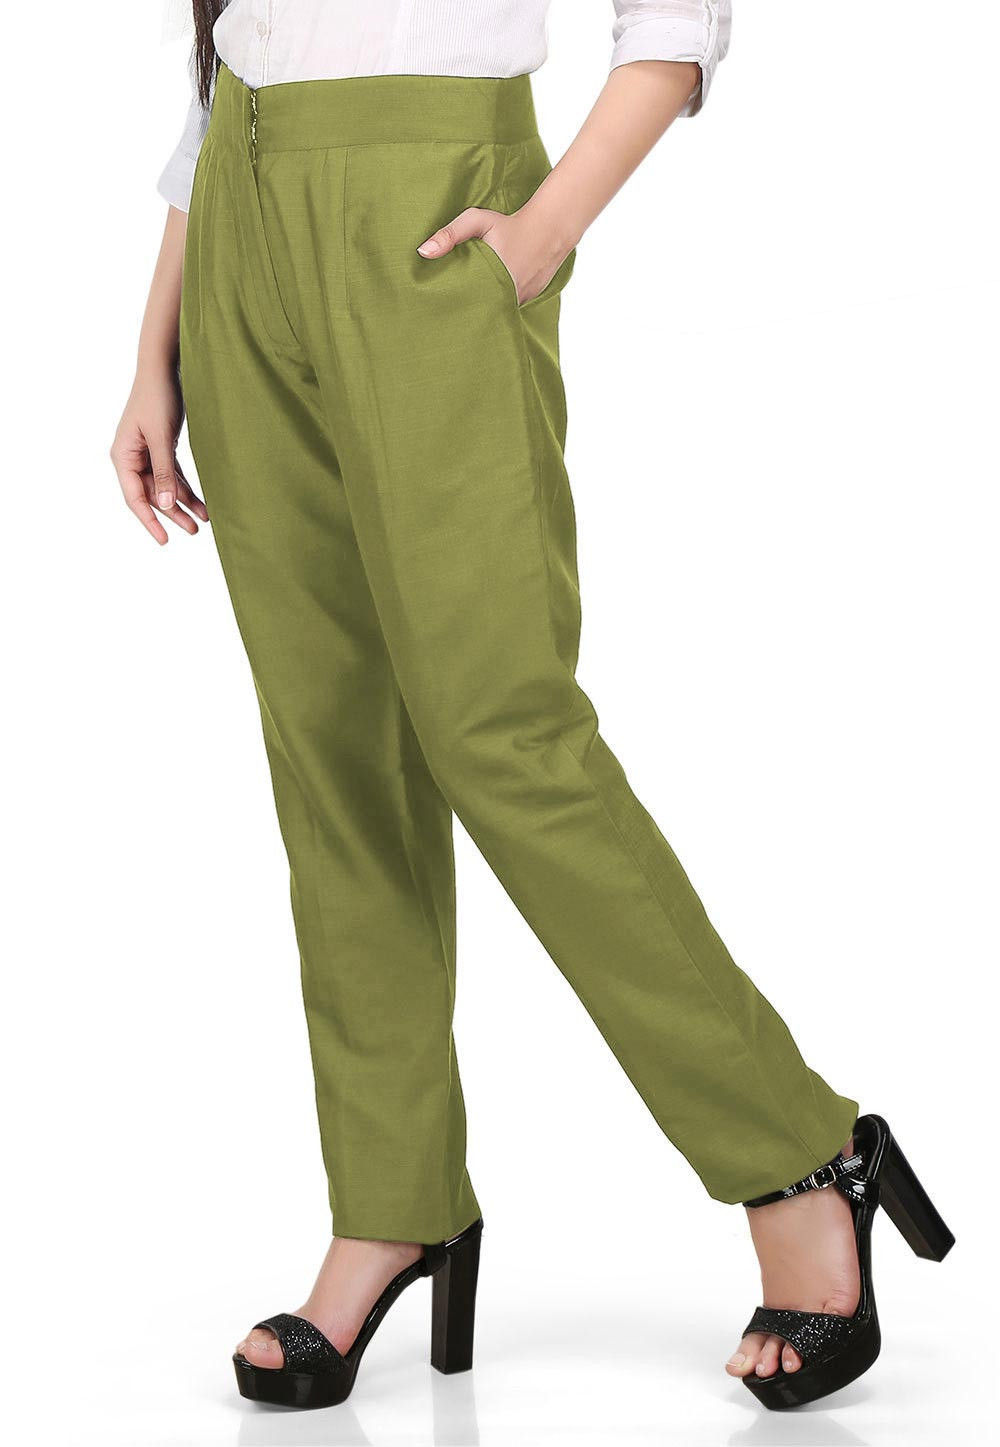 Solid Color Cotton Silk Pant in Olive Green